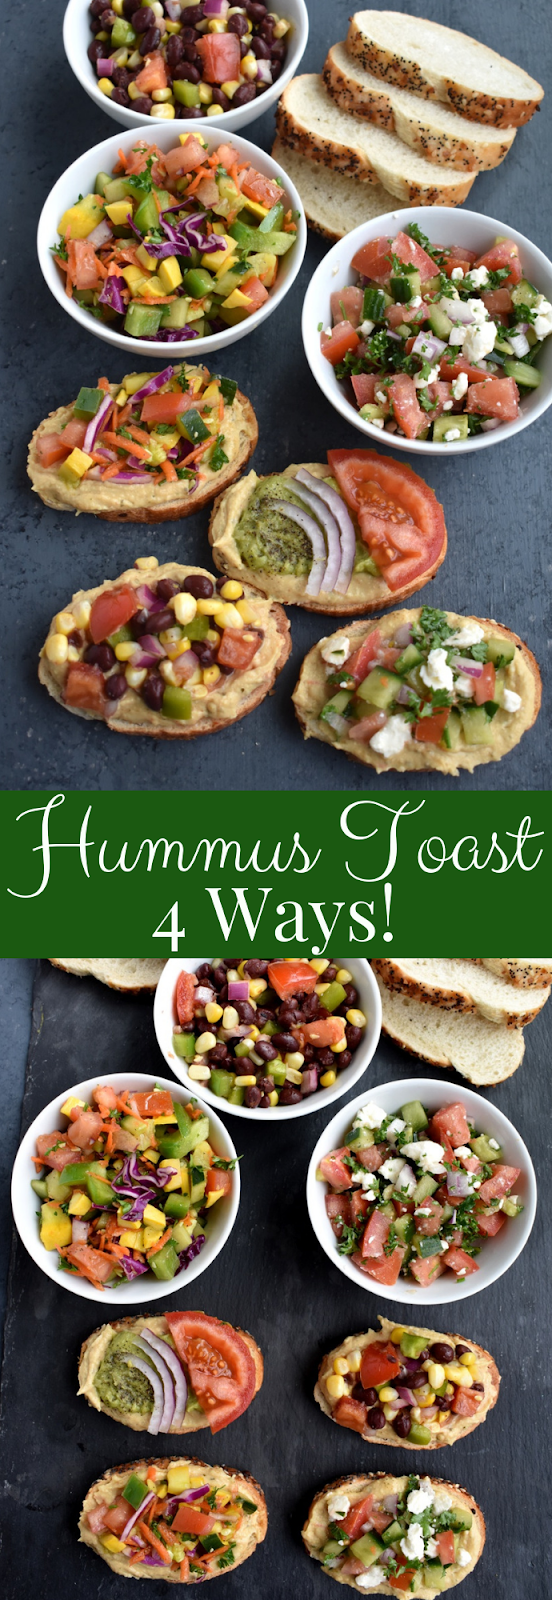 Hummus Toast recipes